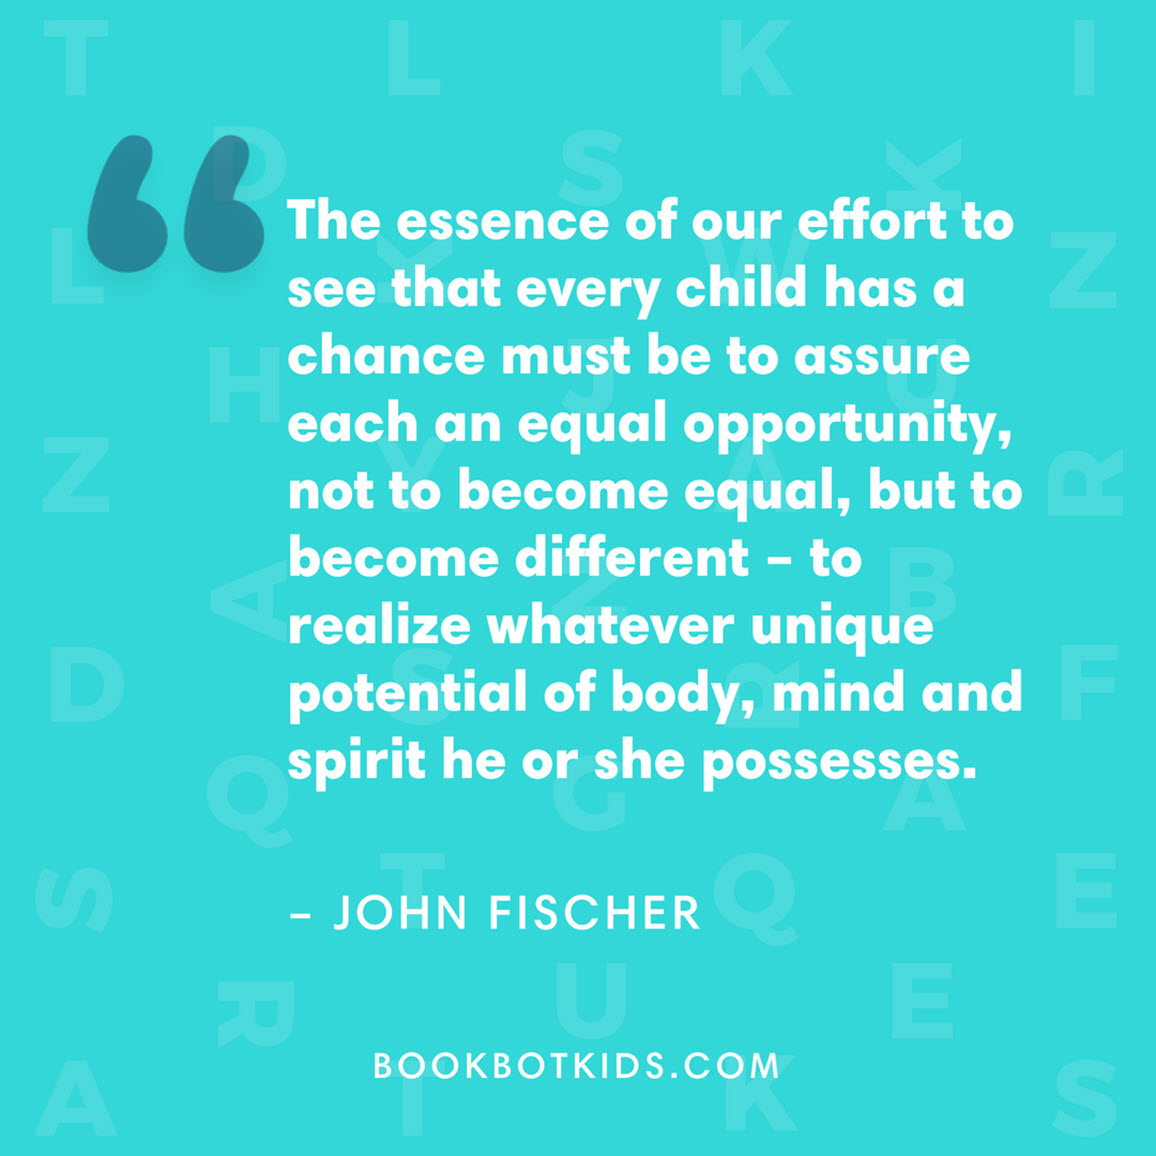 The essence of our effort to see that every child has a chance must be to assure each an equal opportunity, not to become equal, but to become different – to realize whatever unique potential of body, mind and spirit he or she possesses. –  John Fischer